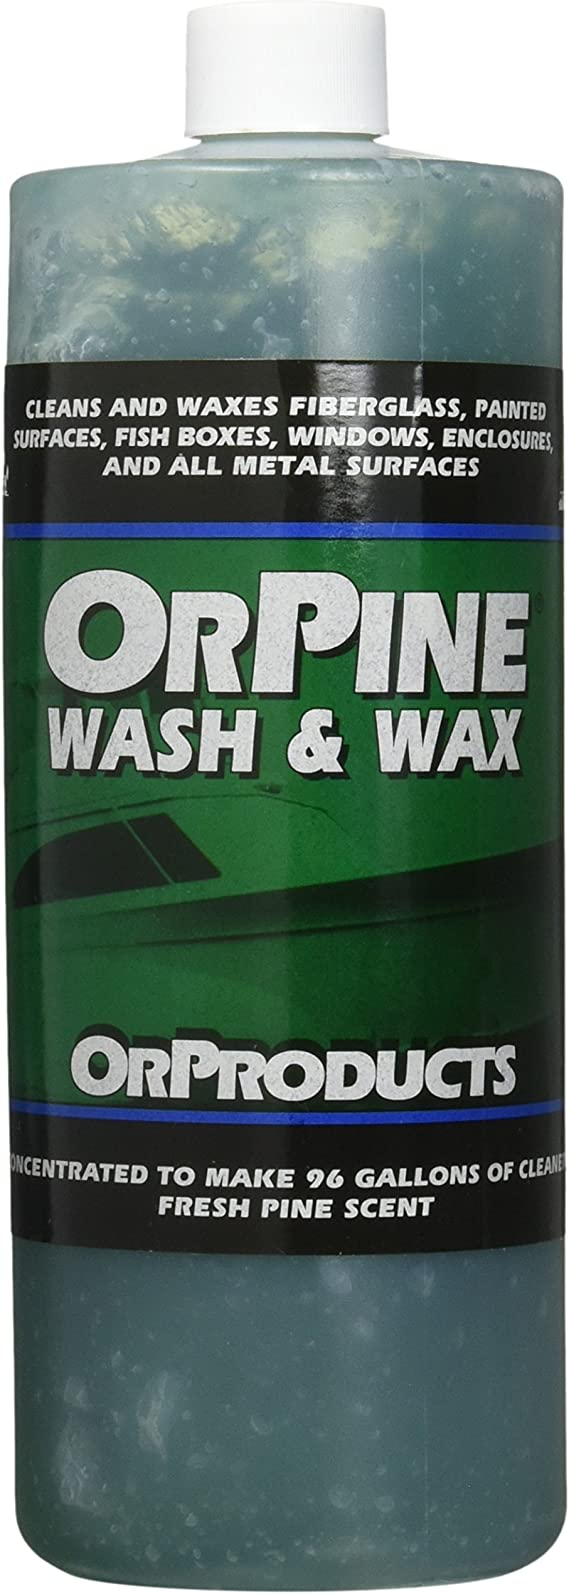 H&M OPW2 Orpine Boat Soap & Wax